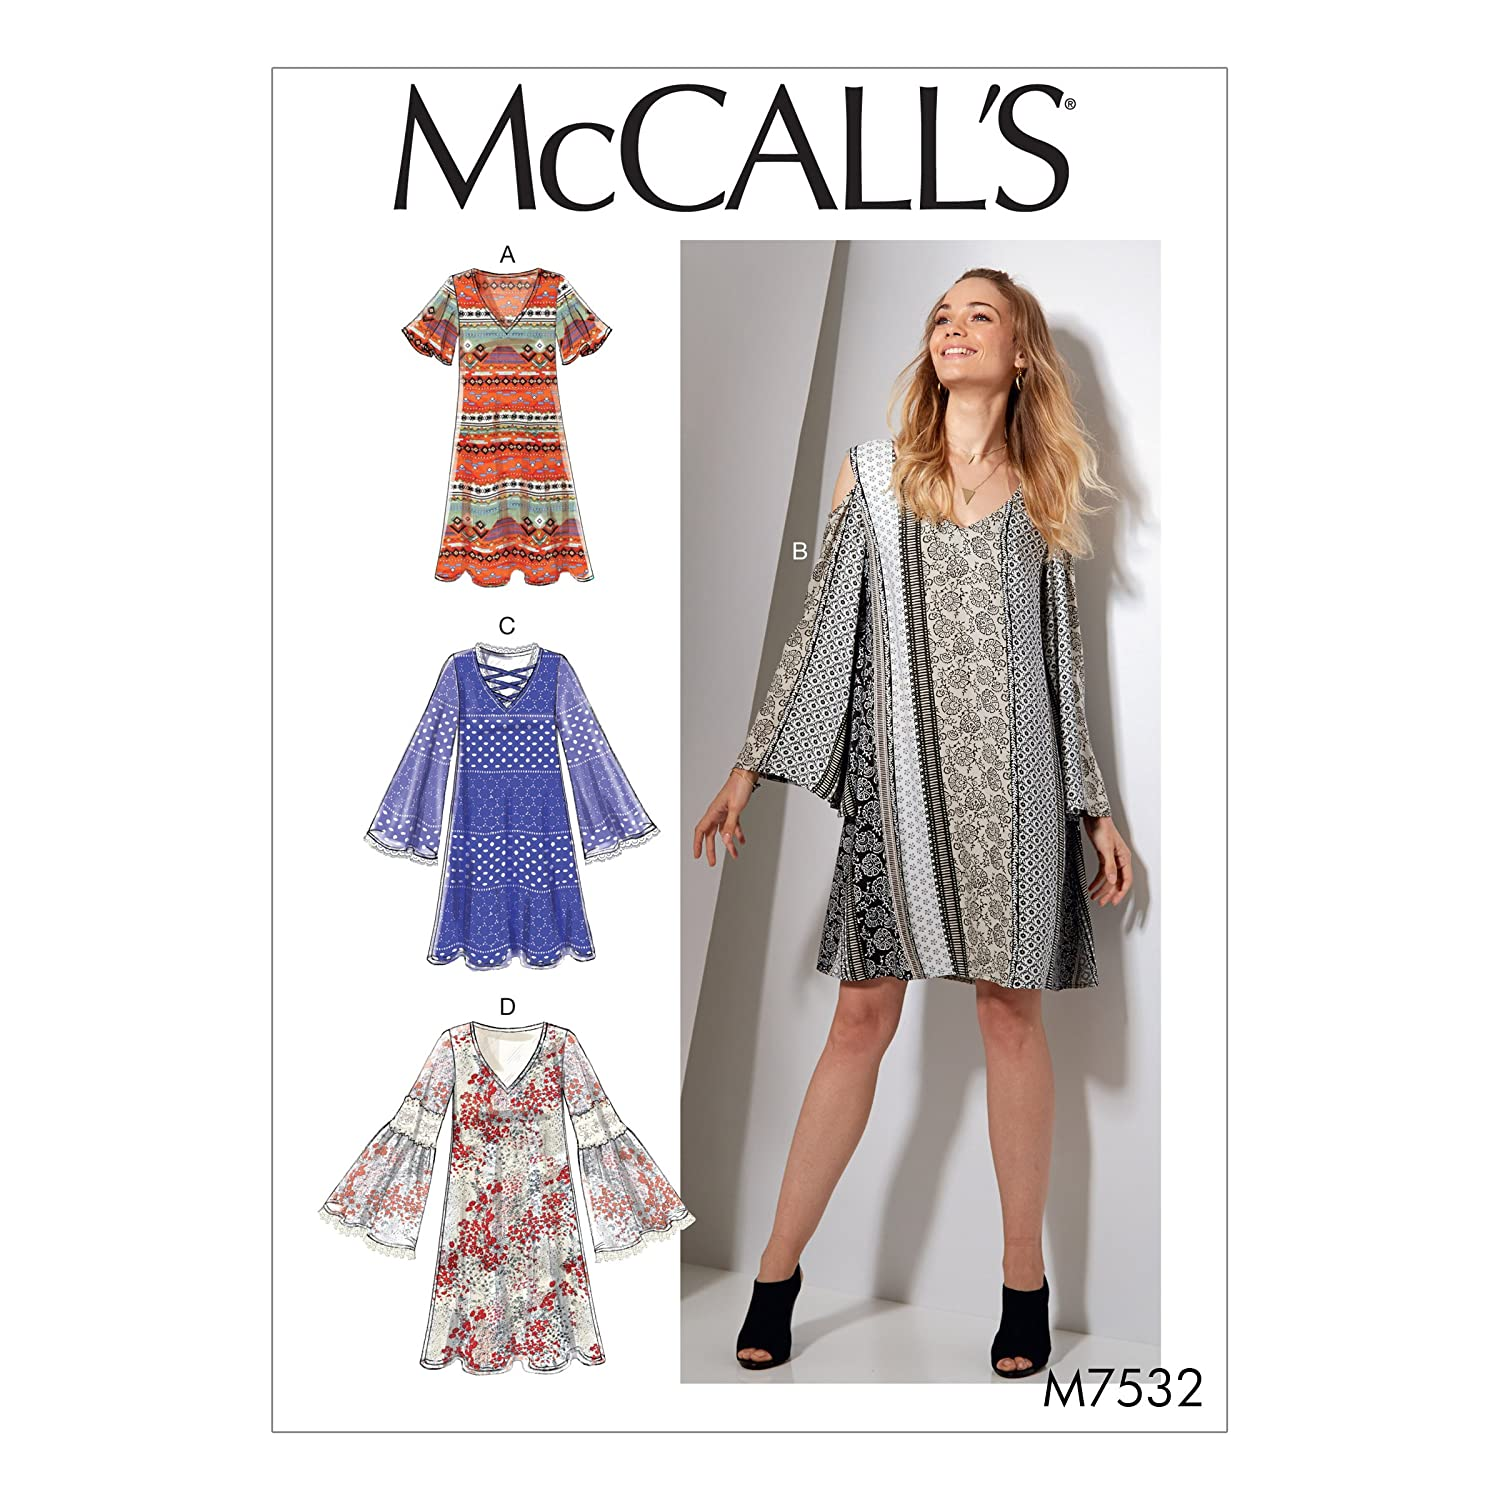 Amazon.com: MCCALLS M7532 Misses V-Neck, Flared-Sleeve Dresses (SIZE 6-14) SEWING PATTERN: Arts, Crafts & Sewing